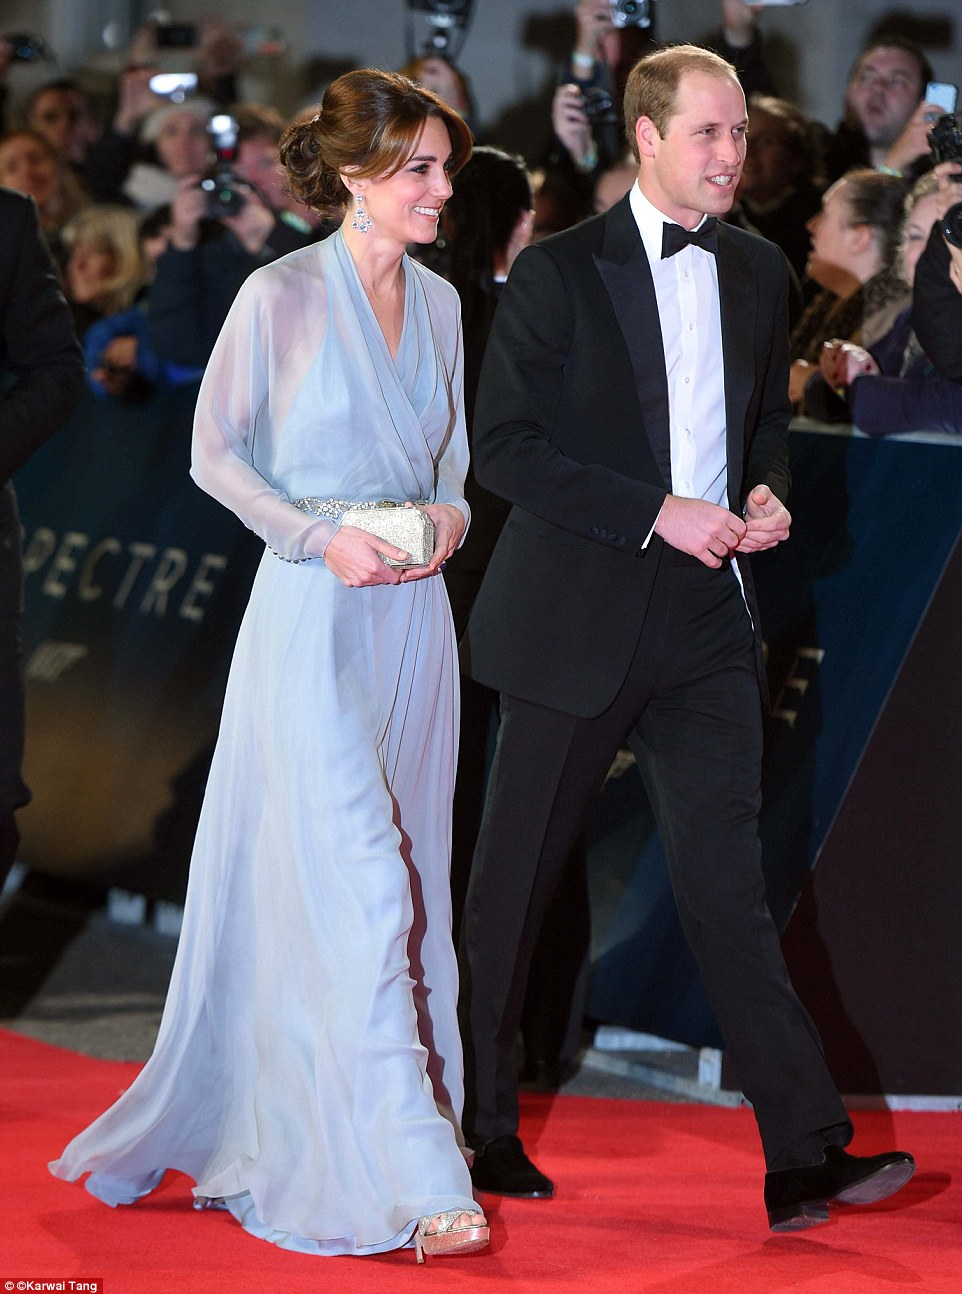 Fans of the franchise: The crowd at the premiere had their cameras at the ready as the Royal couple arrived